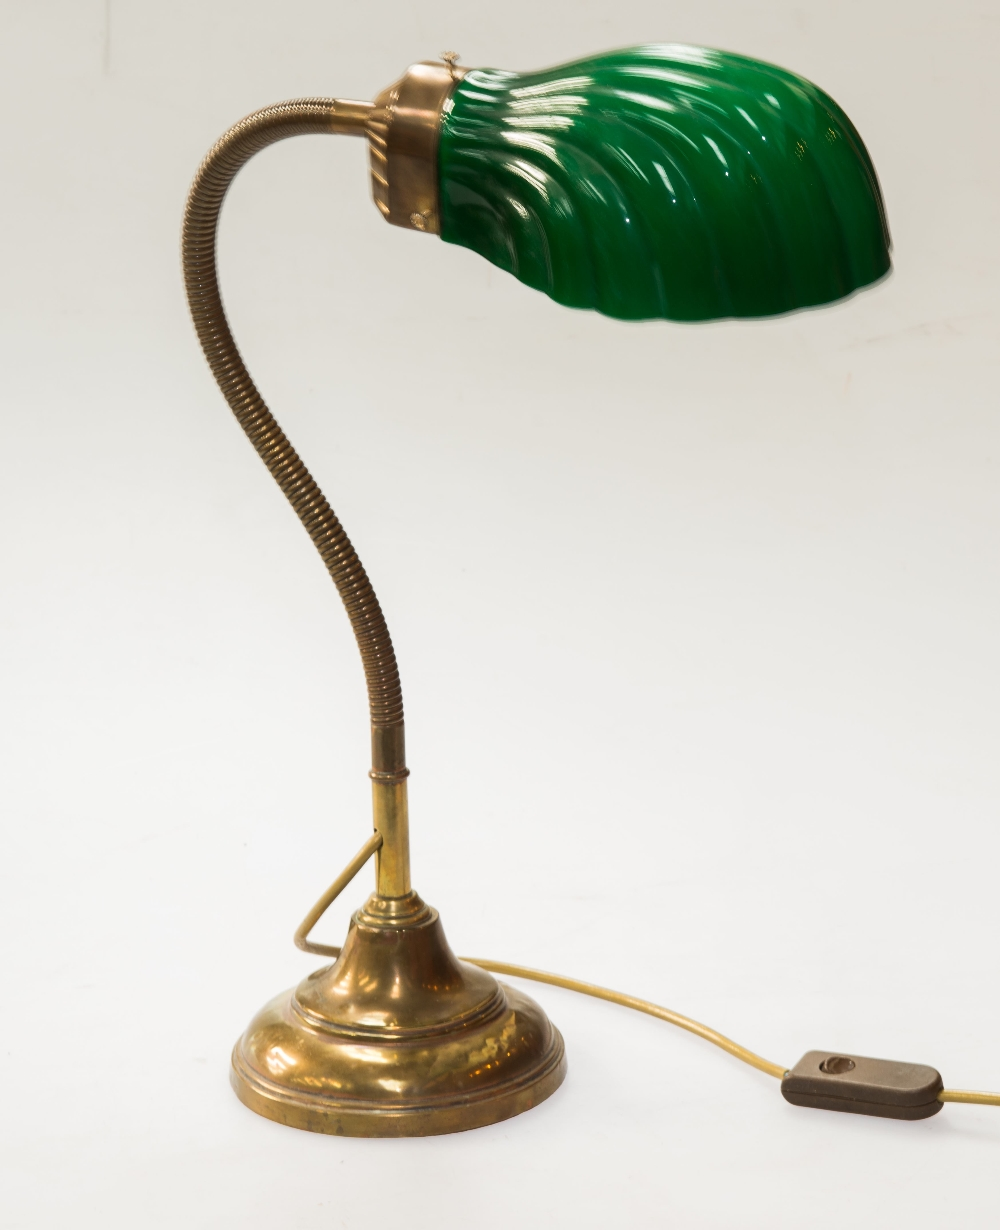 Vintage style desk lamp - Lot 25 A Vintage Angle Poise Brass Desk Lamp With Shell Shaped Ribbed Green